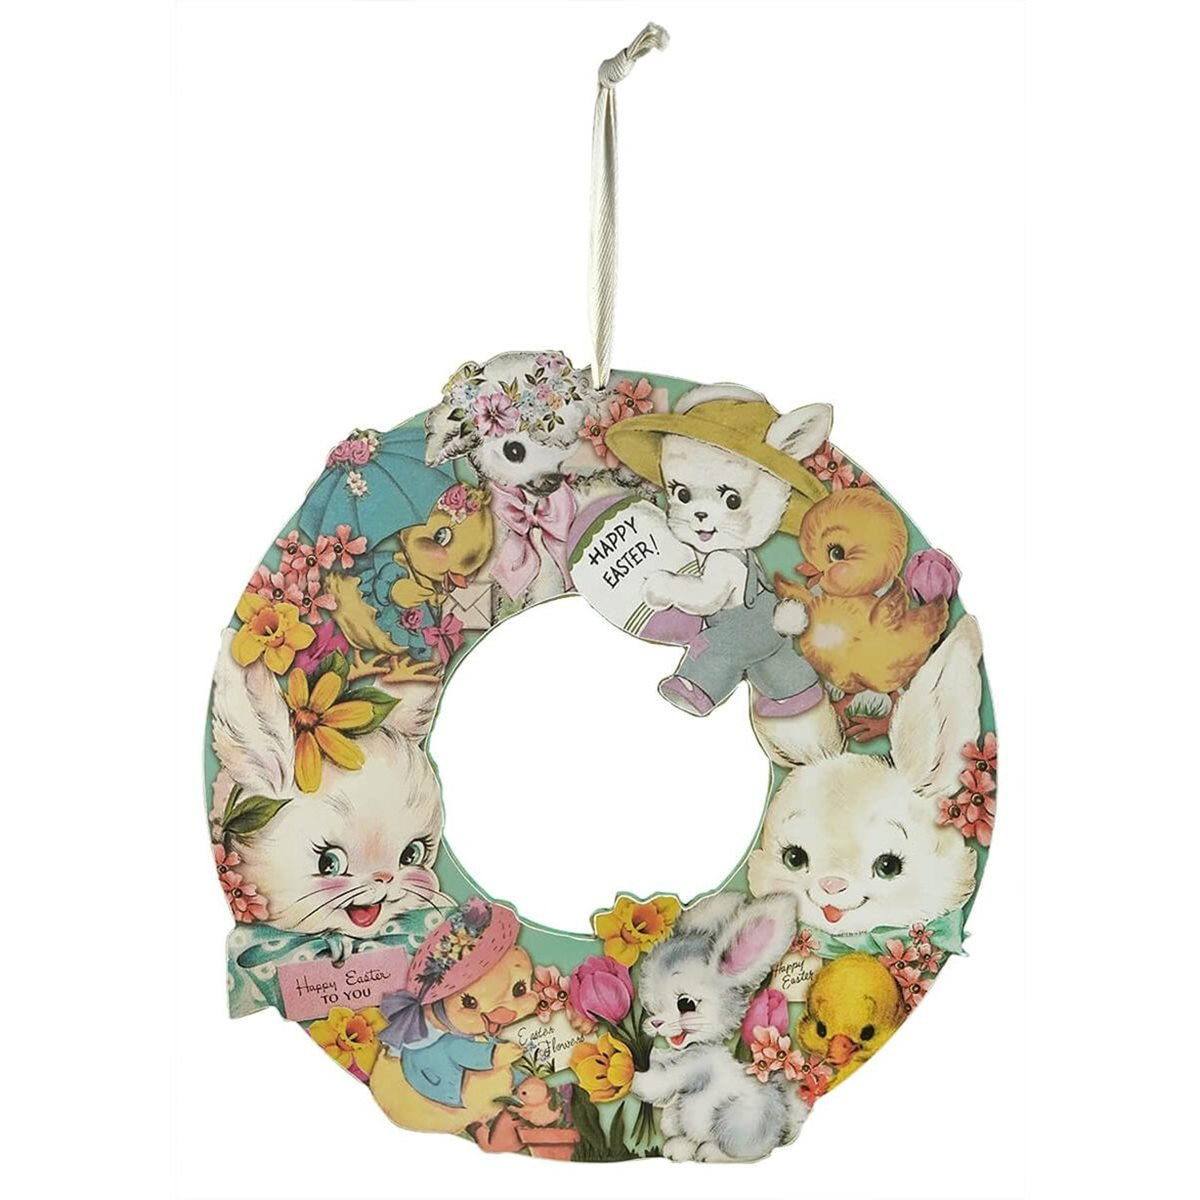 Retro Happy Easter Wreath By Primitives By Kathy Traditions